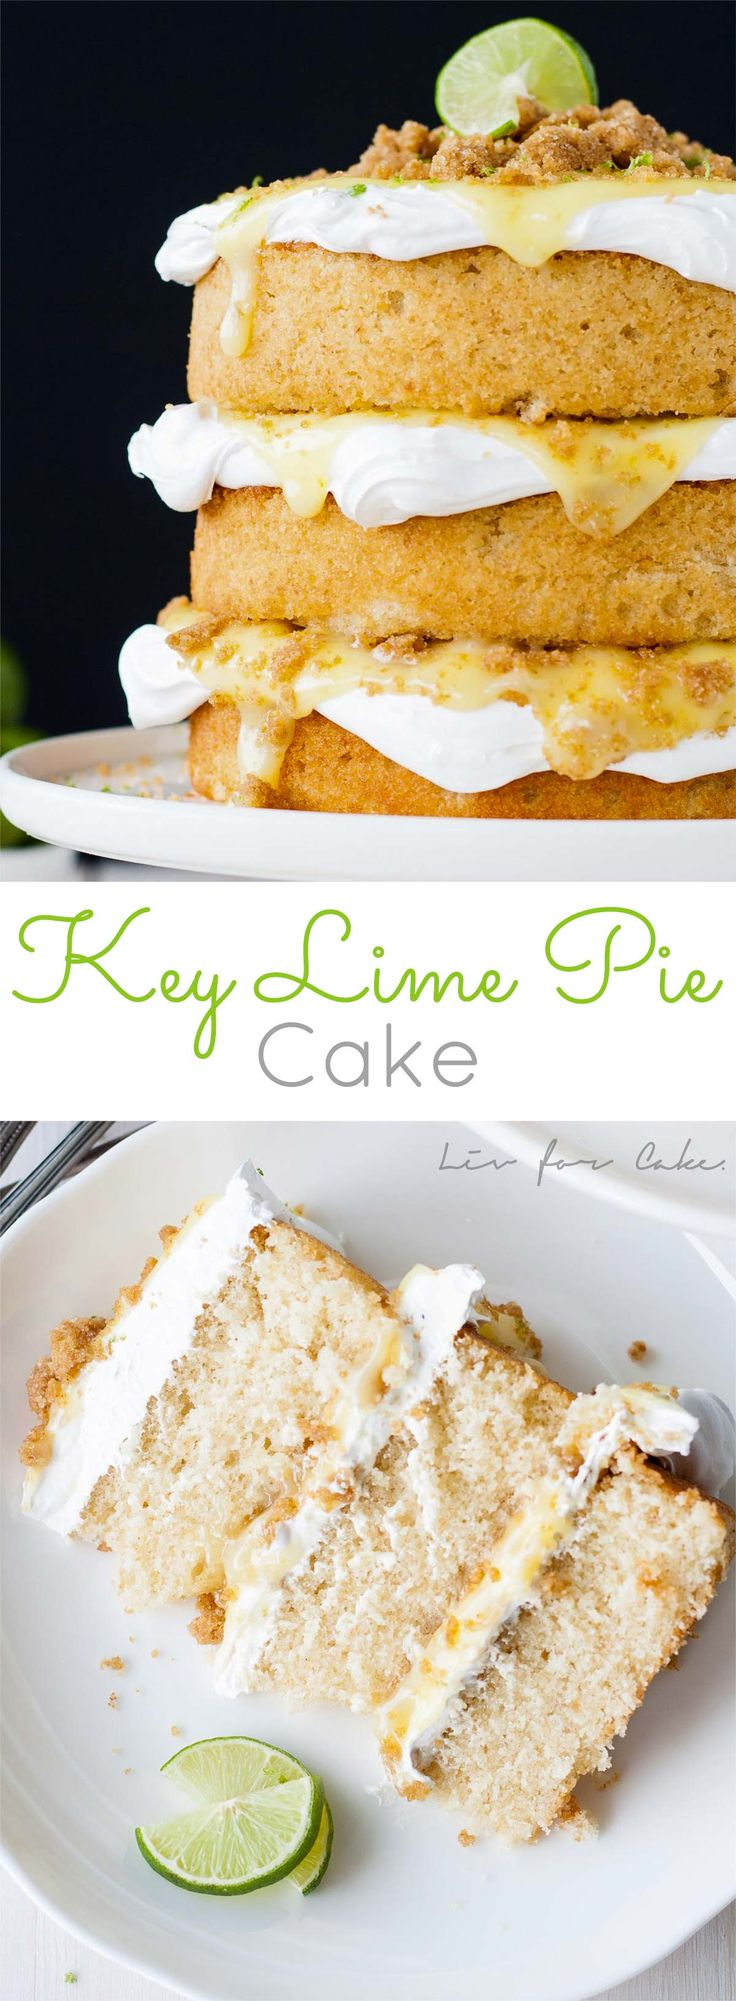 273 best Lime foods images on Pinterest | Petit fours, Conch ...